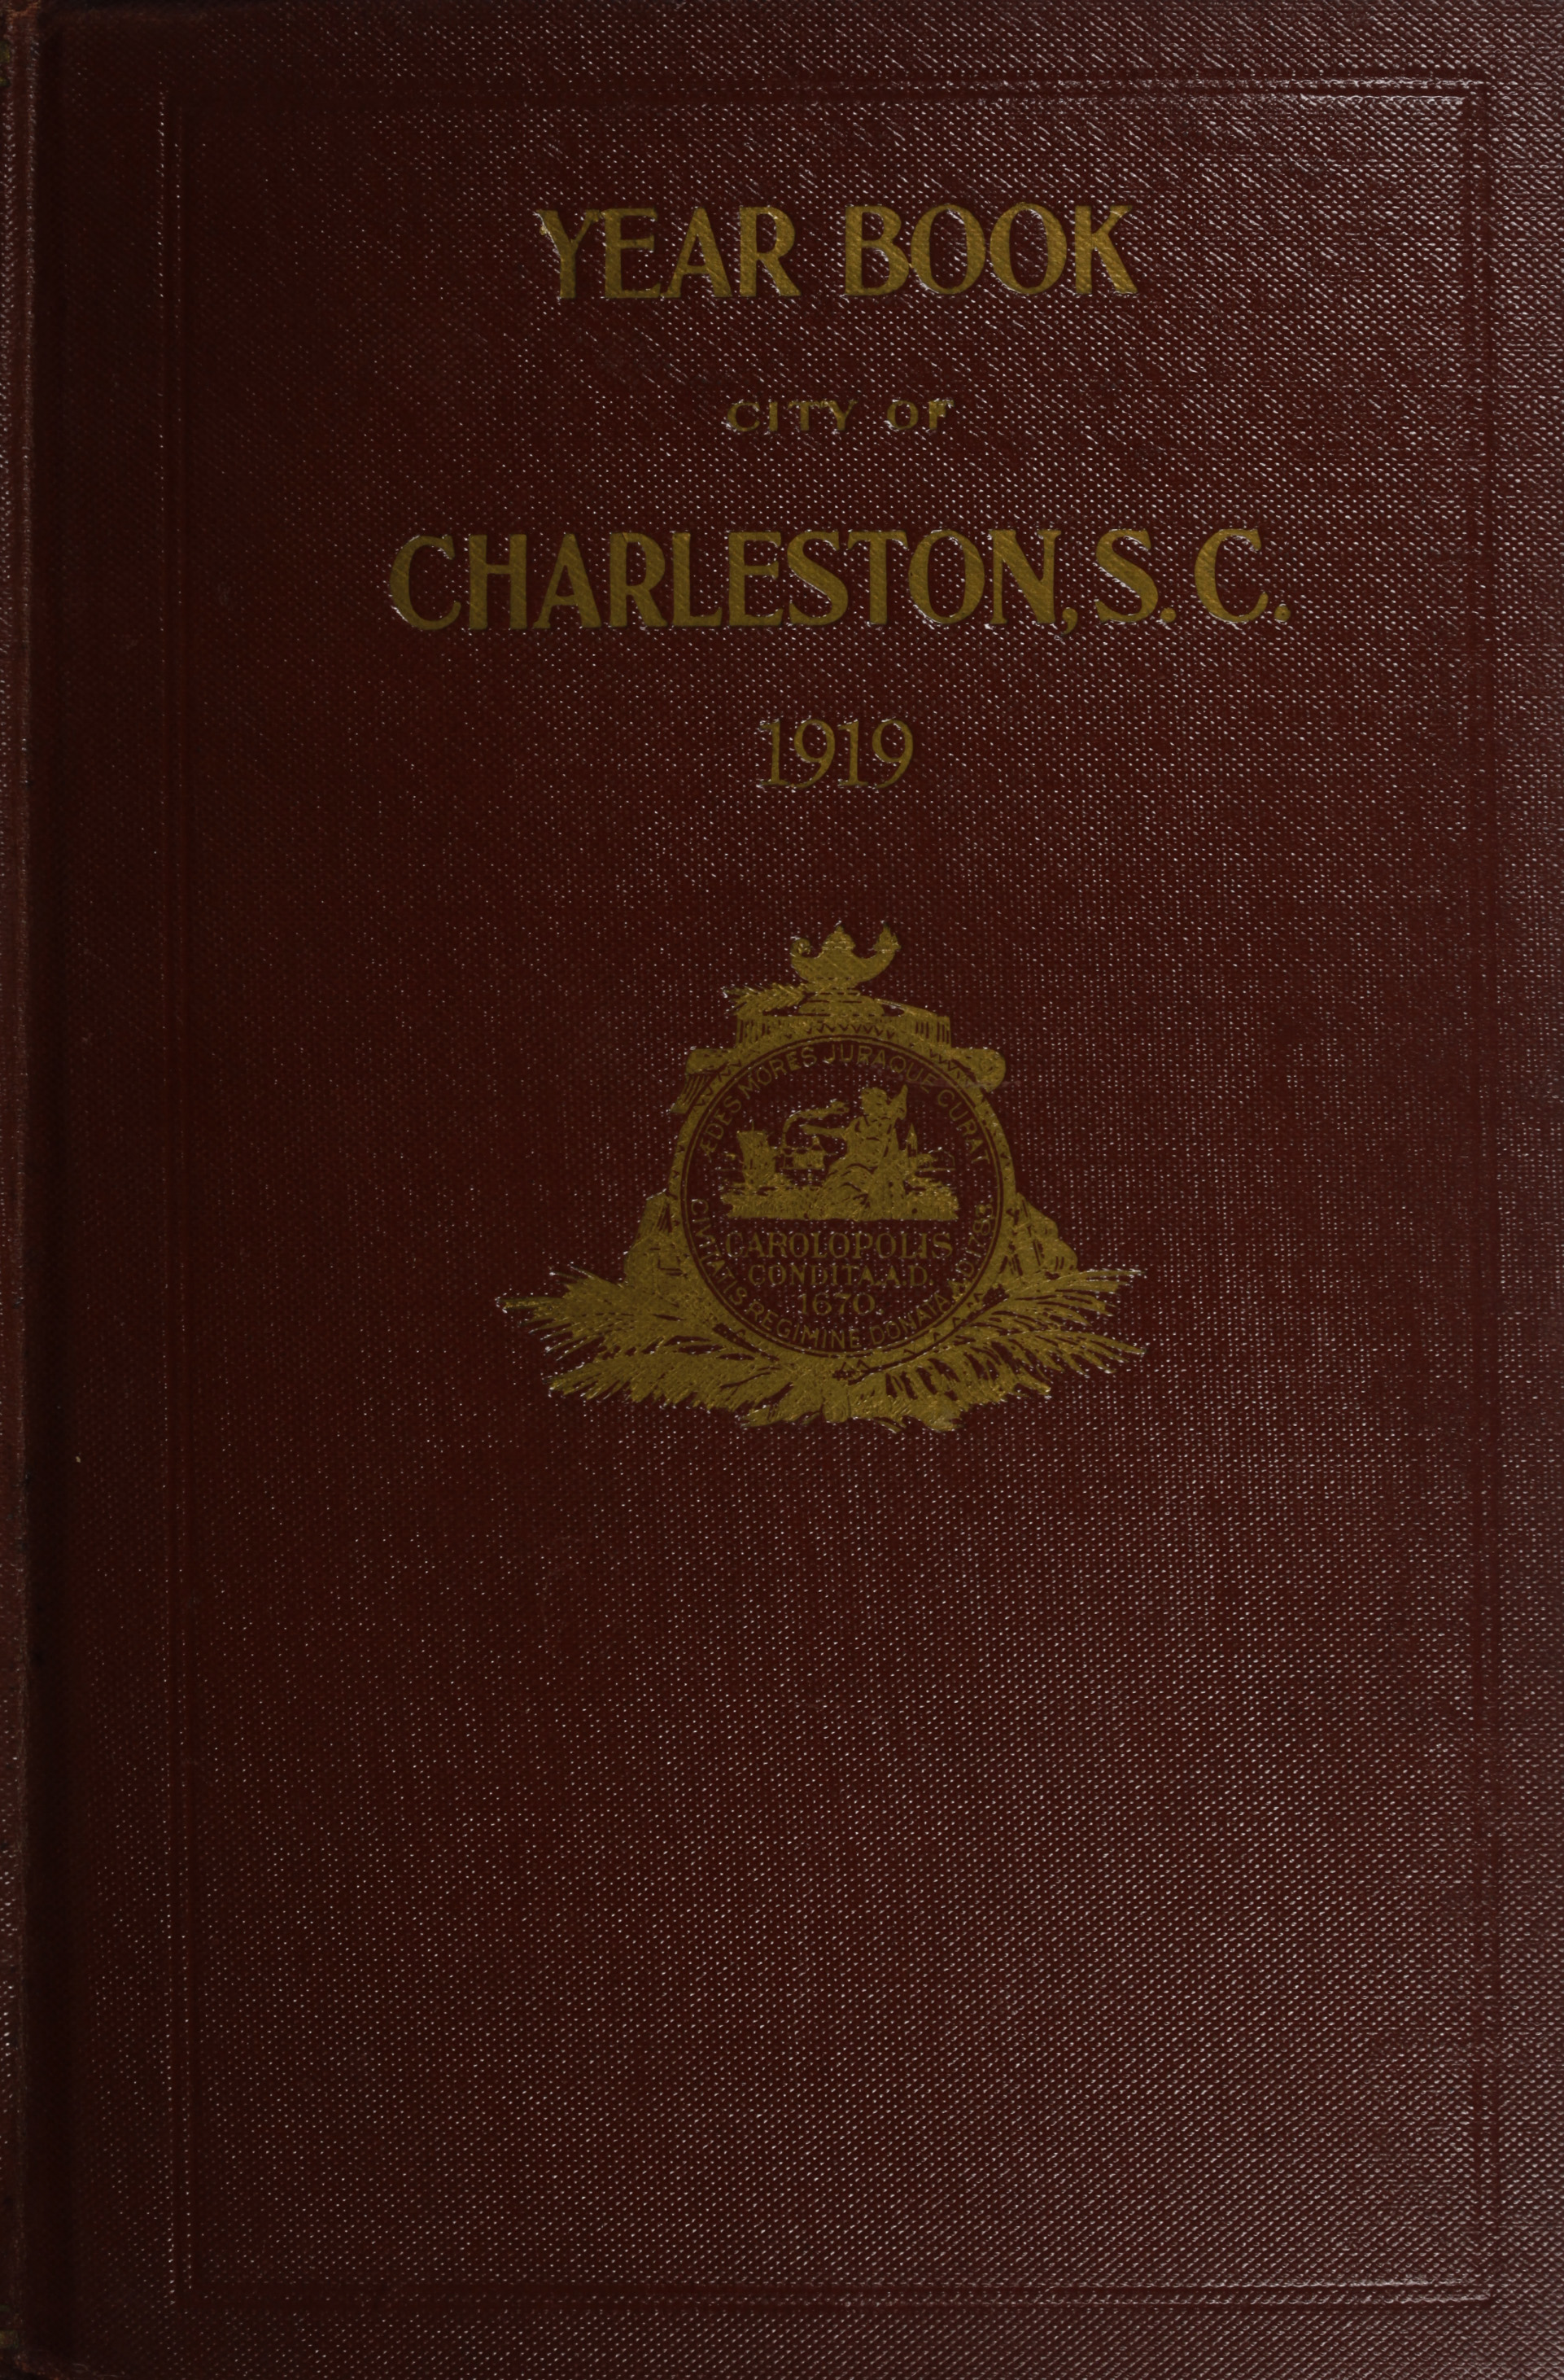 Charleston Yearbook, 1919